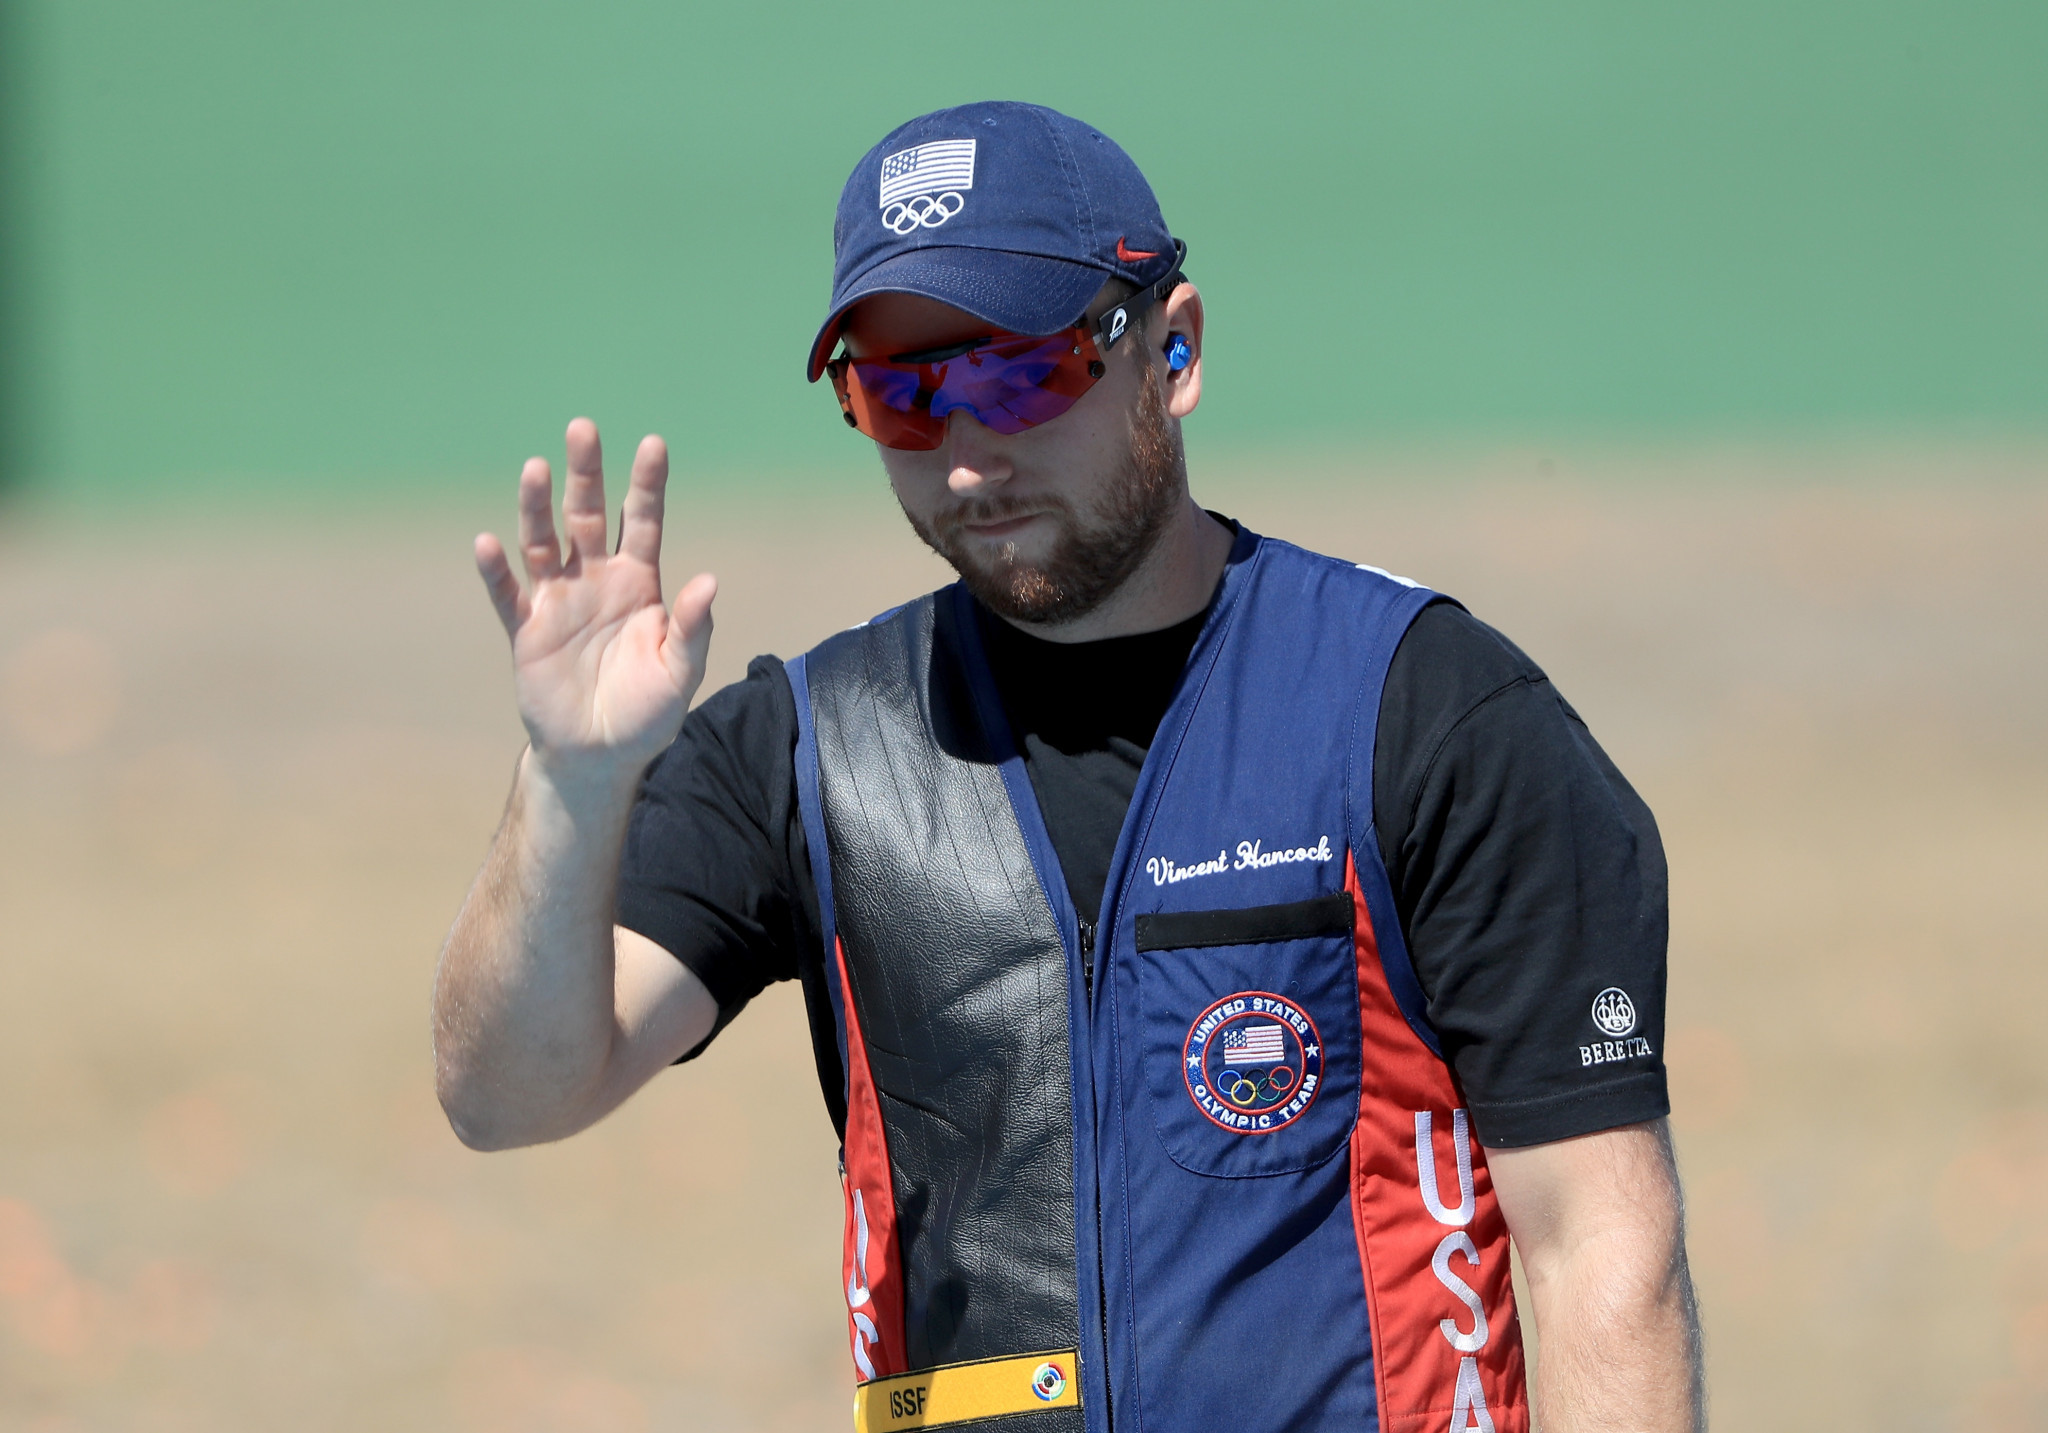 American Vincent Hancock hit every target in the men's skeet final at the ISSF Shotgun World Cup in Acapulco to equal the world record ©Getty Images